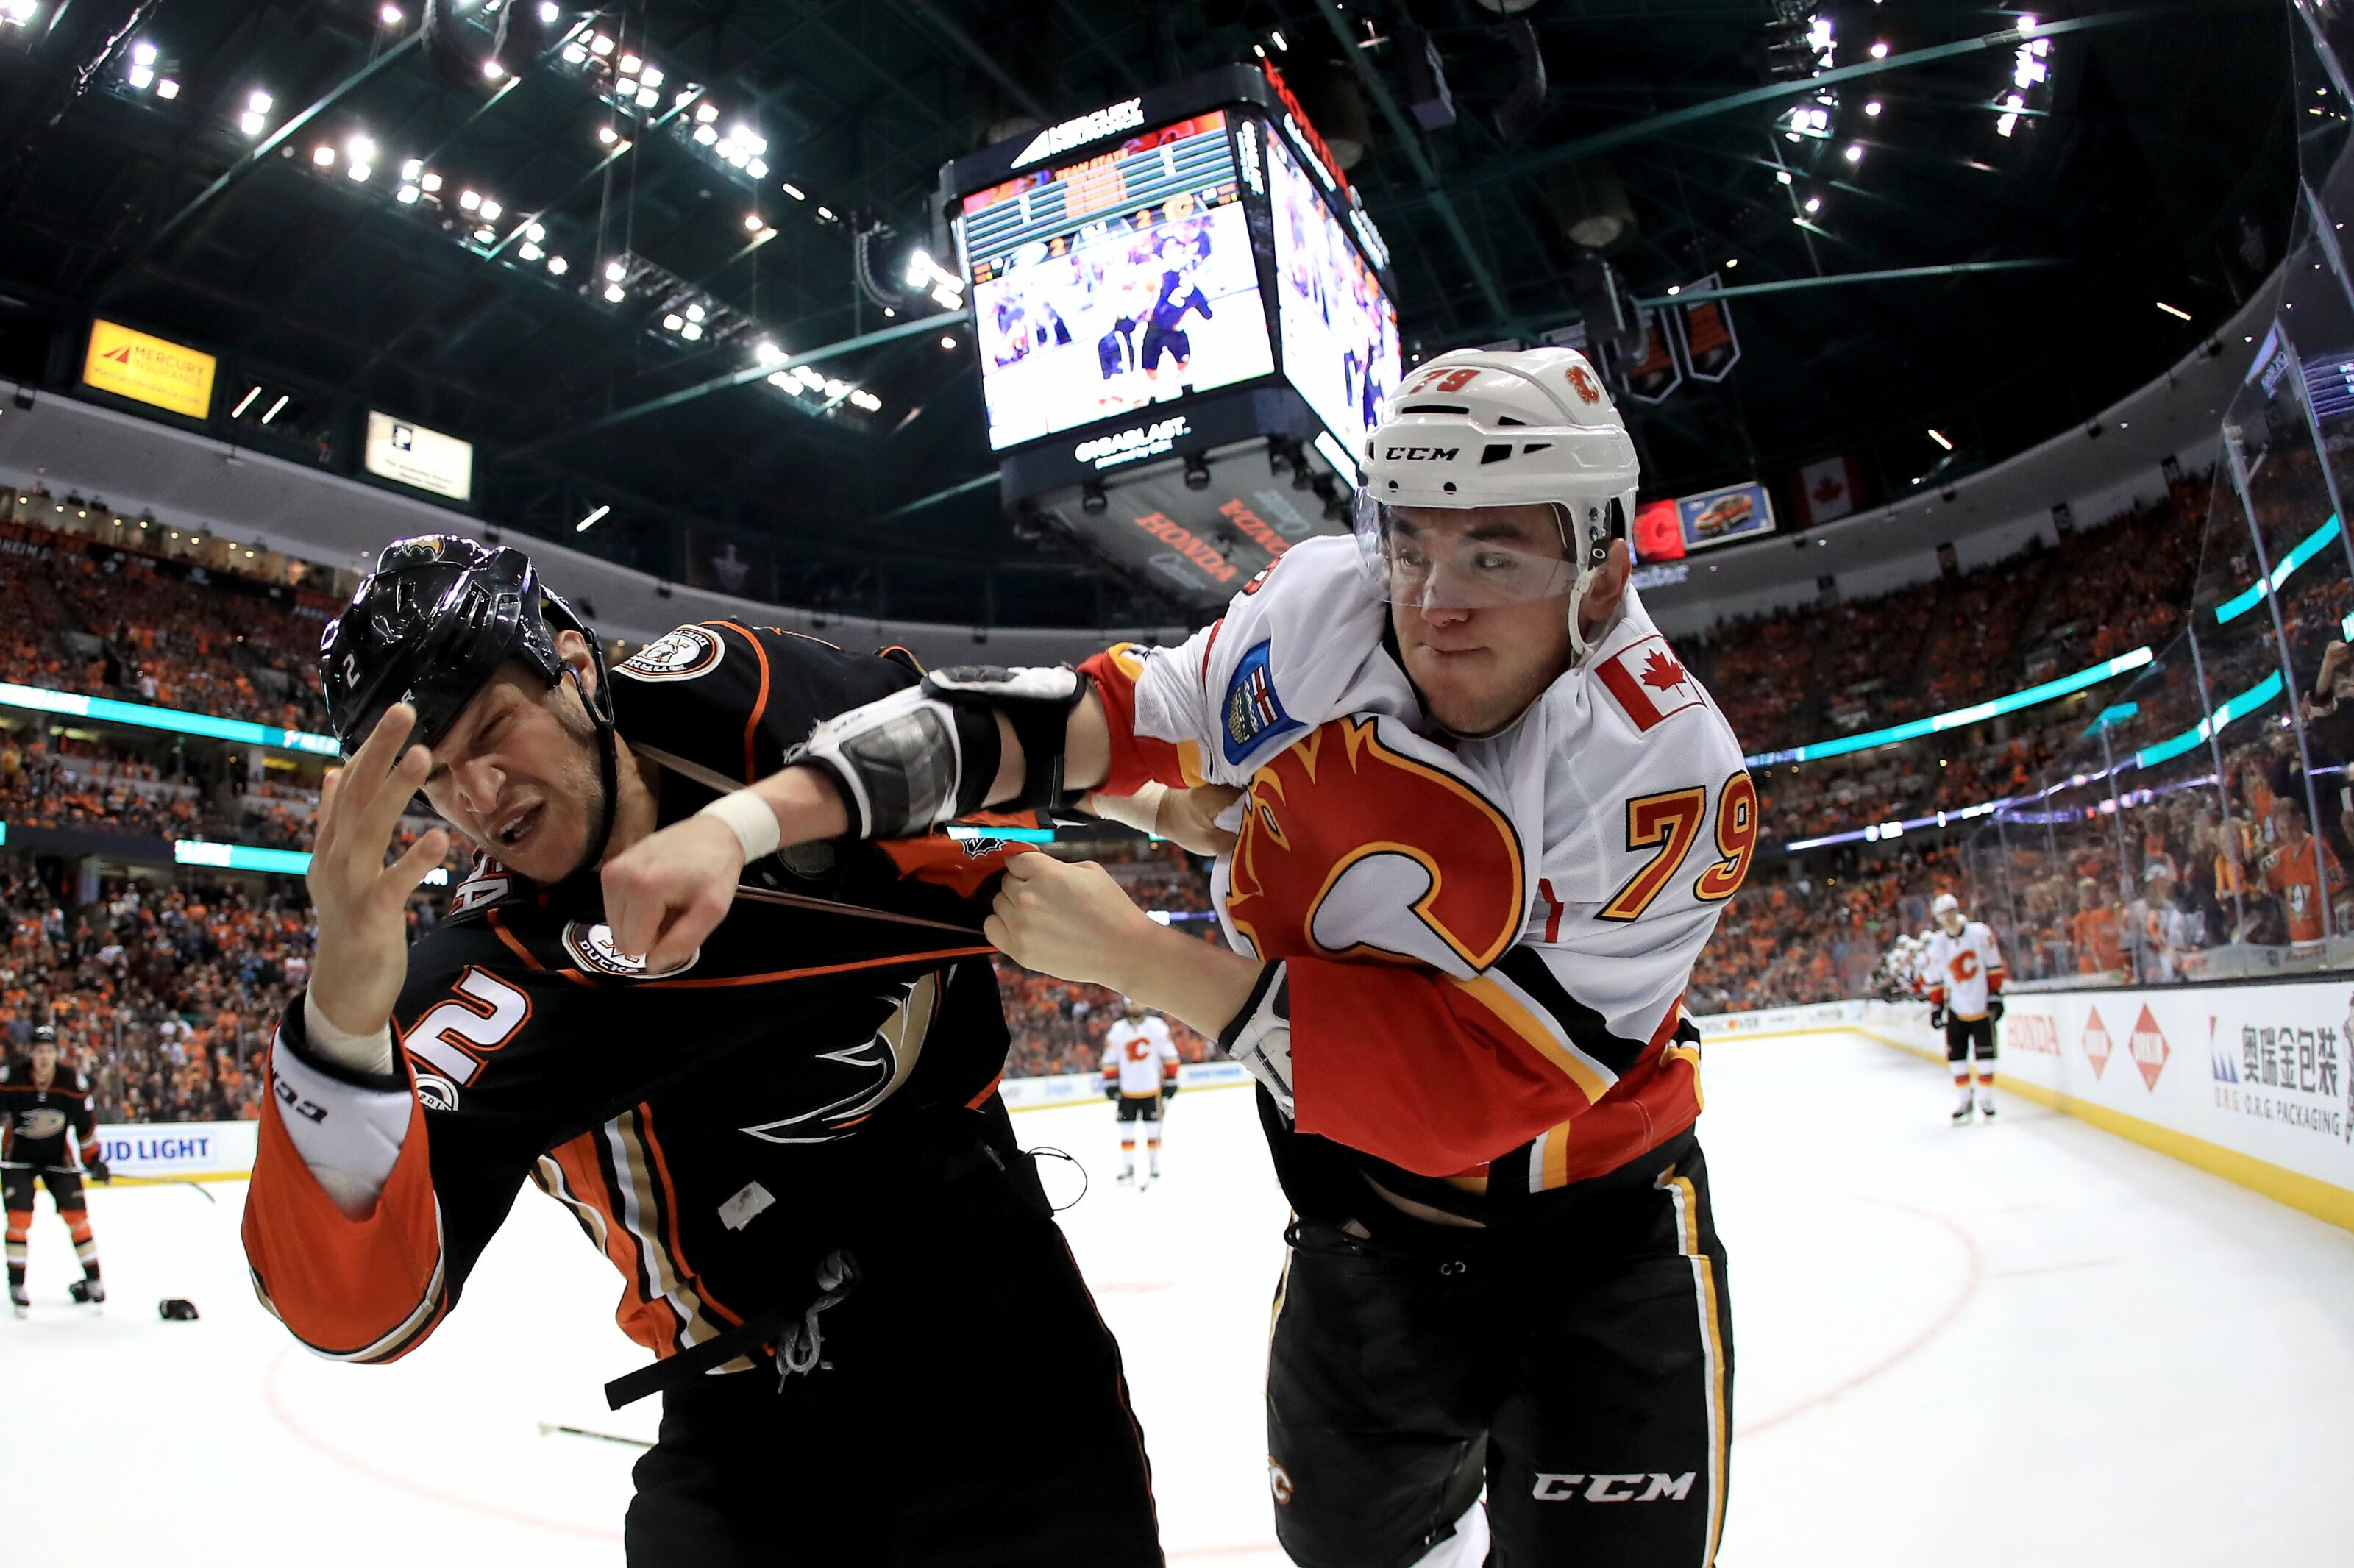 668980476-calgary-flames-v-anaheim-ducks-game-two.jpg